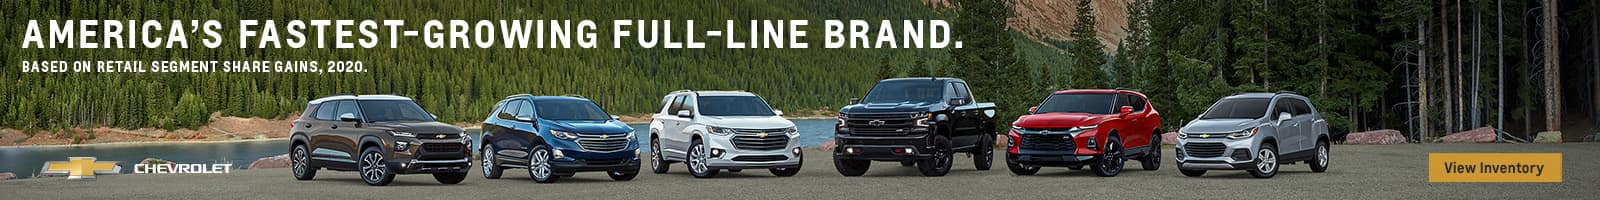 America's fastest-growing full-line brand, chevrolet, full inventory